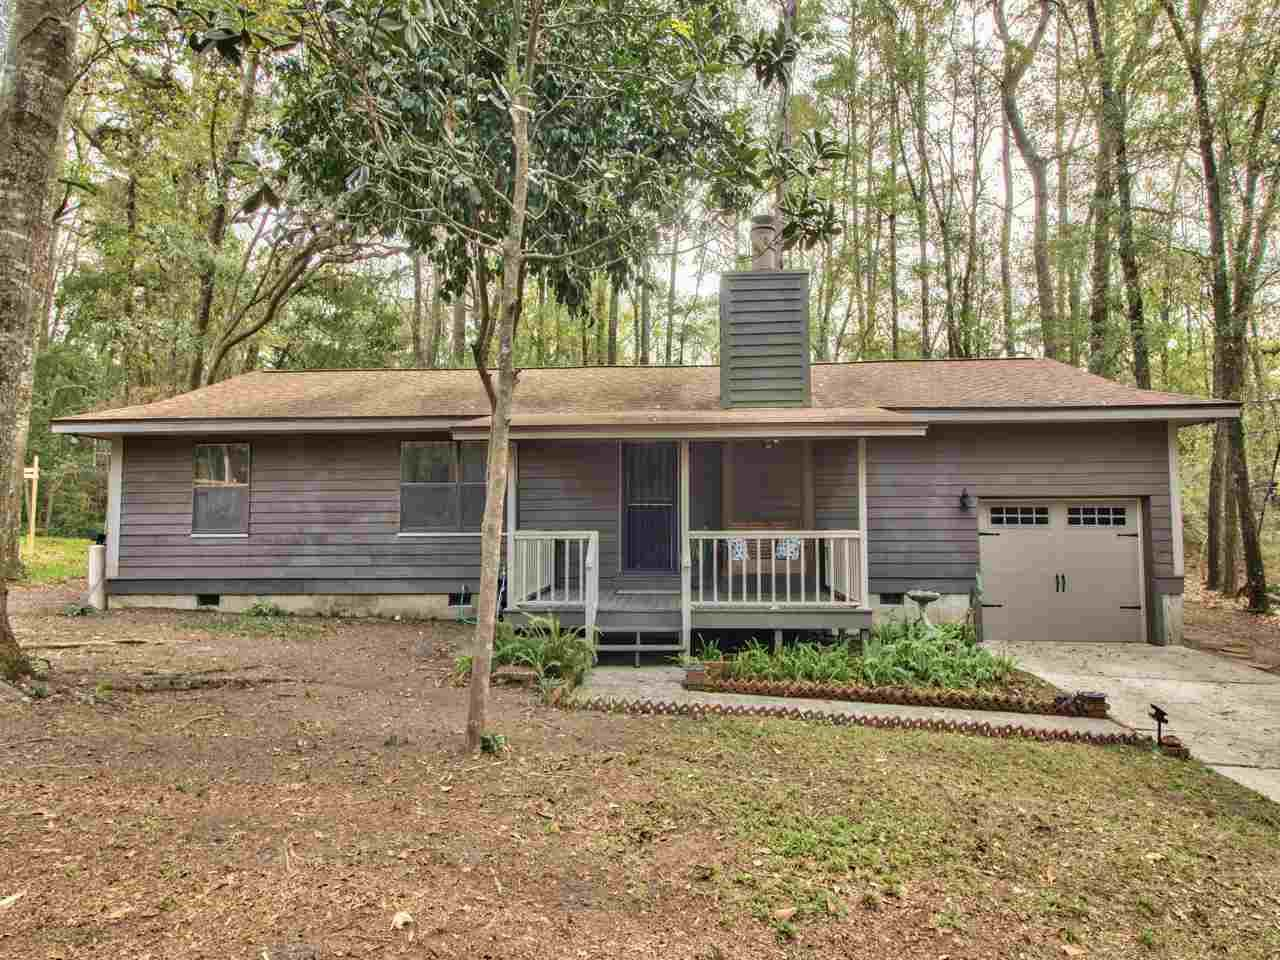 Photo for 811 BARRIE AVENUE, TALLAHASSEE, FL 32303 (MLS # 314435)